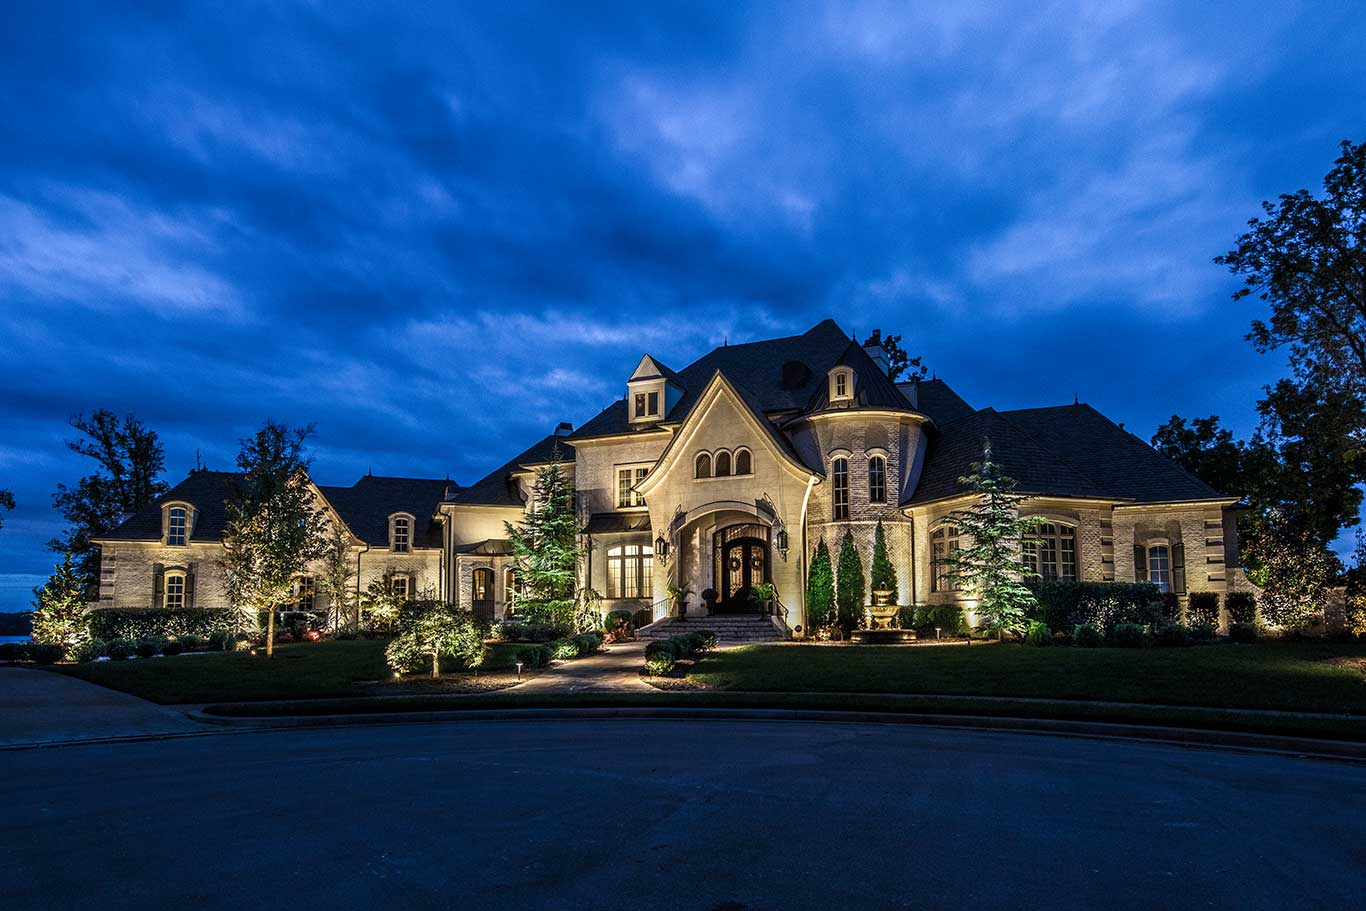 4 Ways to Increase Security at Home with Outdoor Lighting